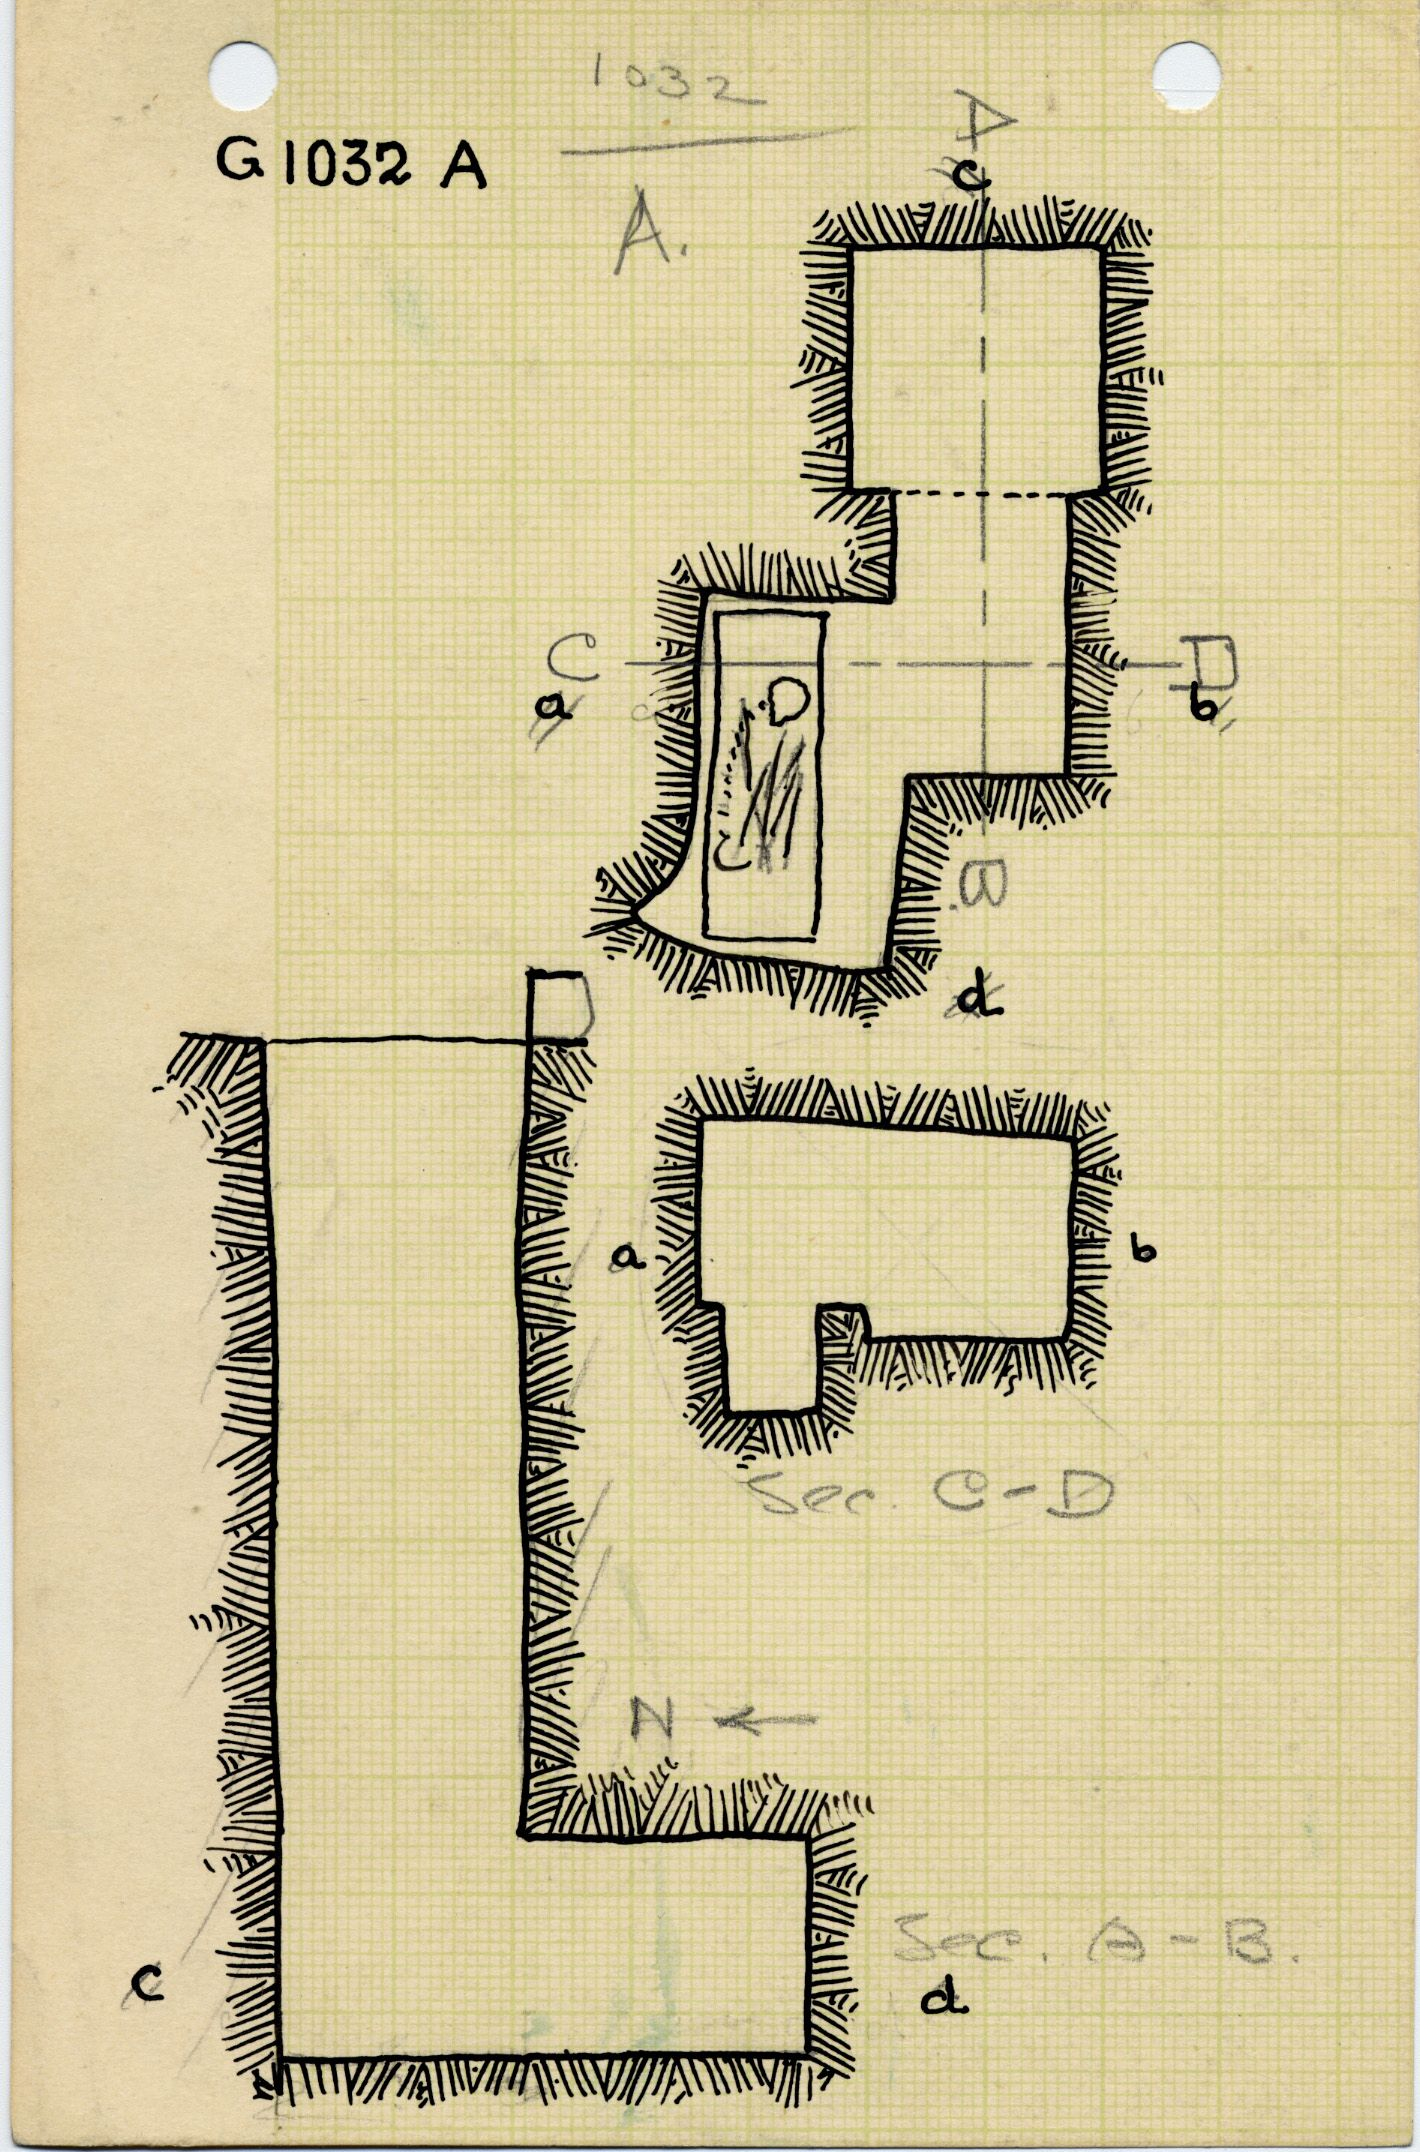 Maps and plans: G 1032, Shaft A